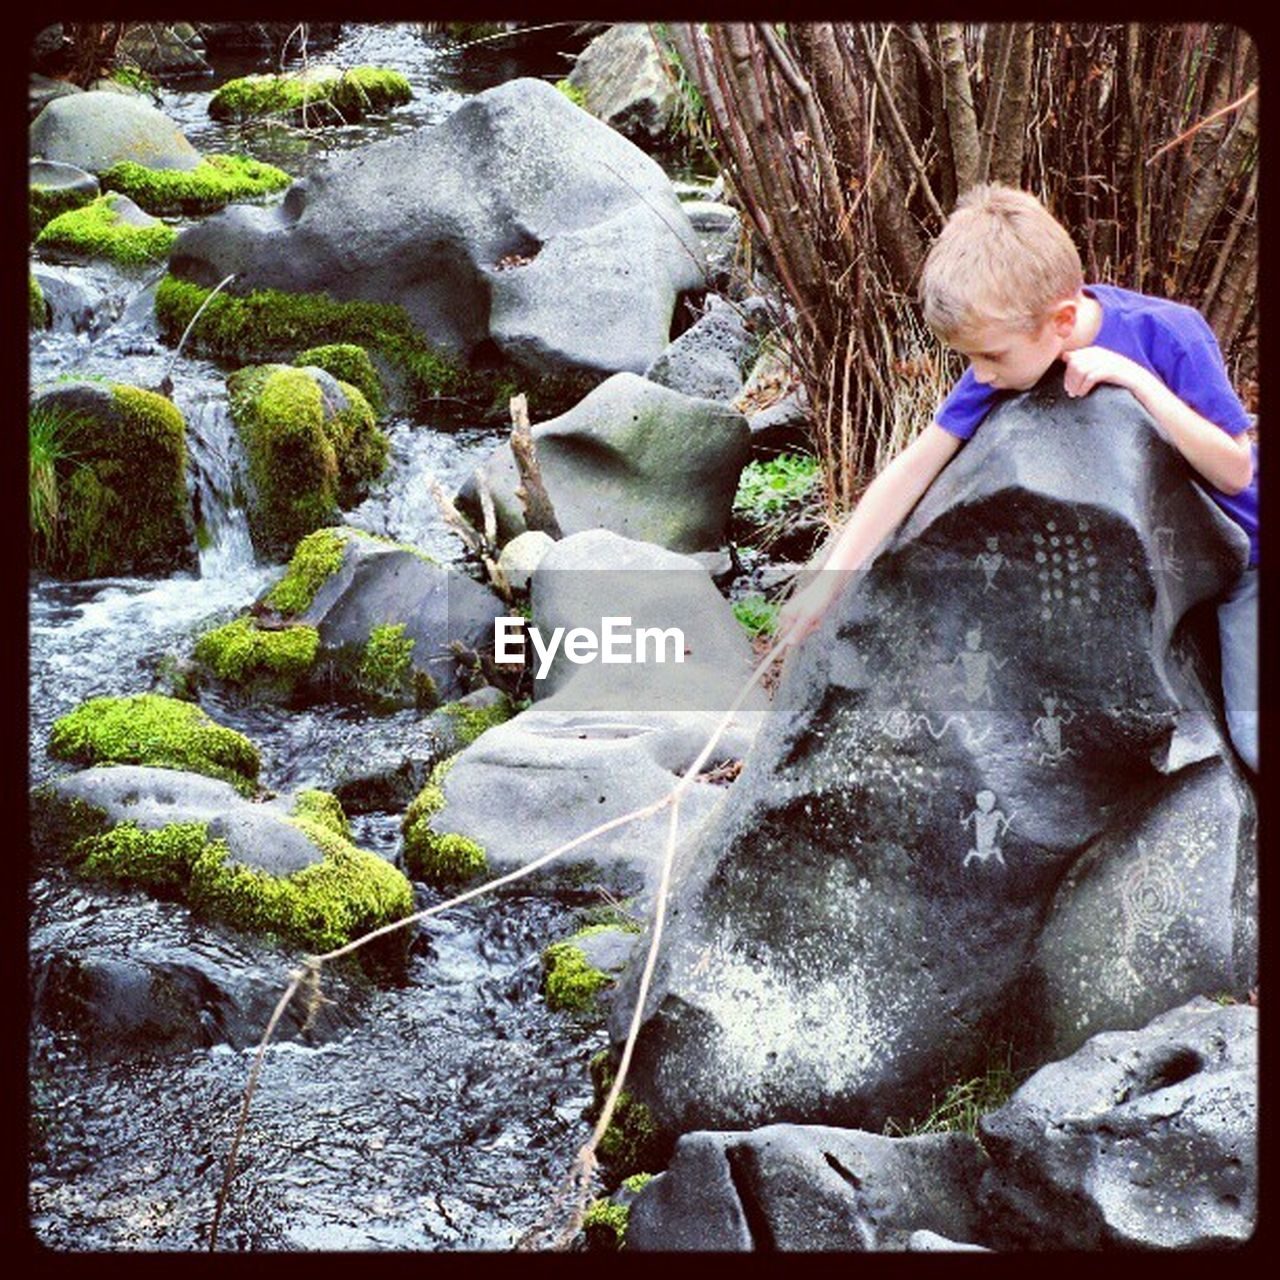 childhood, rock - object, one person, water, day, outdoors, waterfall, boys, real people, blond hair, motion, full length, children only, child, one boy only, climbing, nature, people